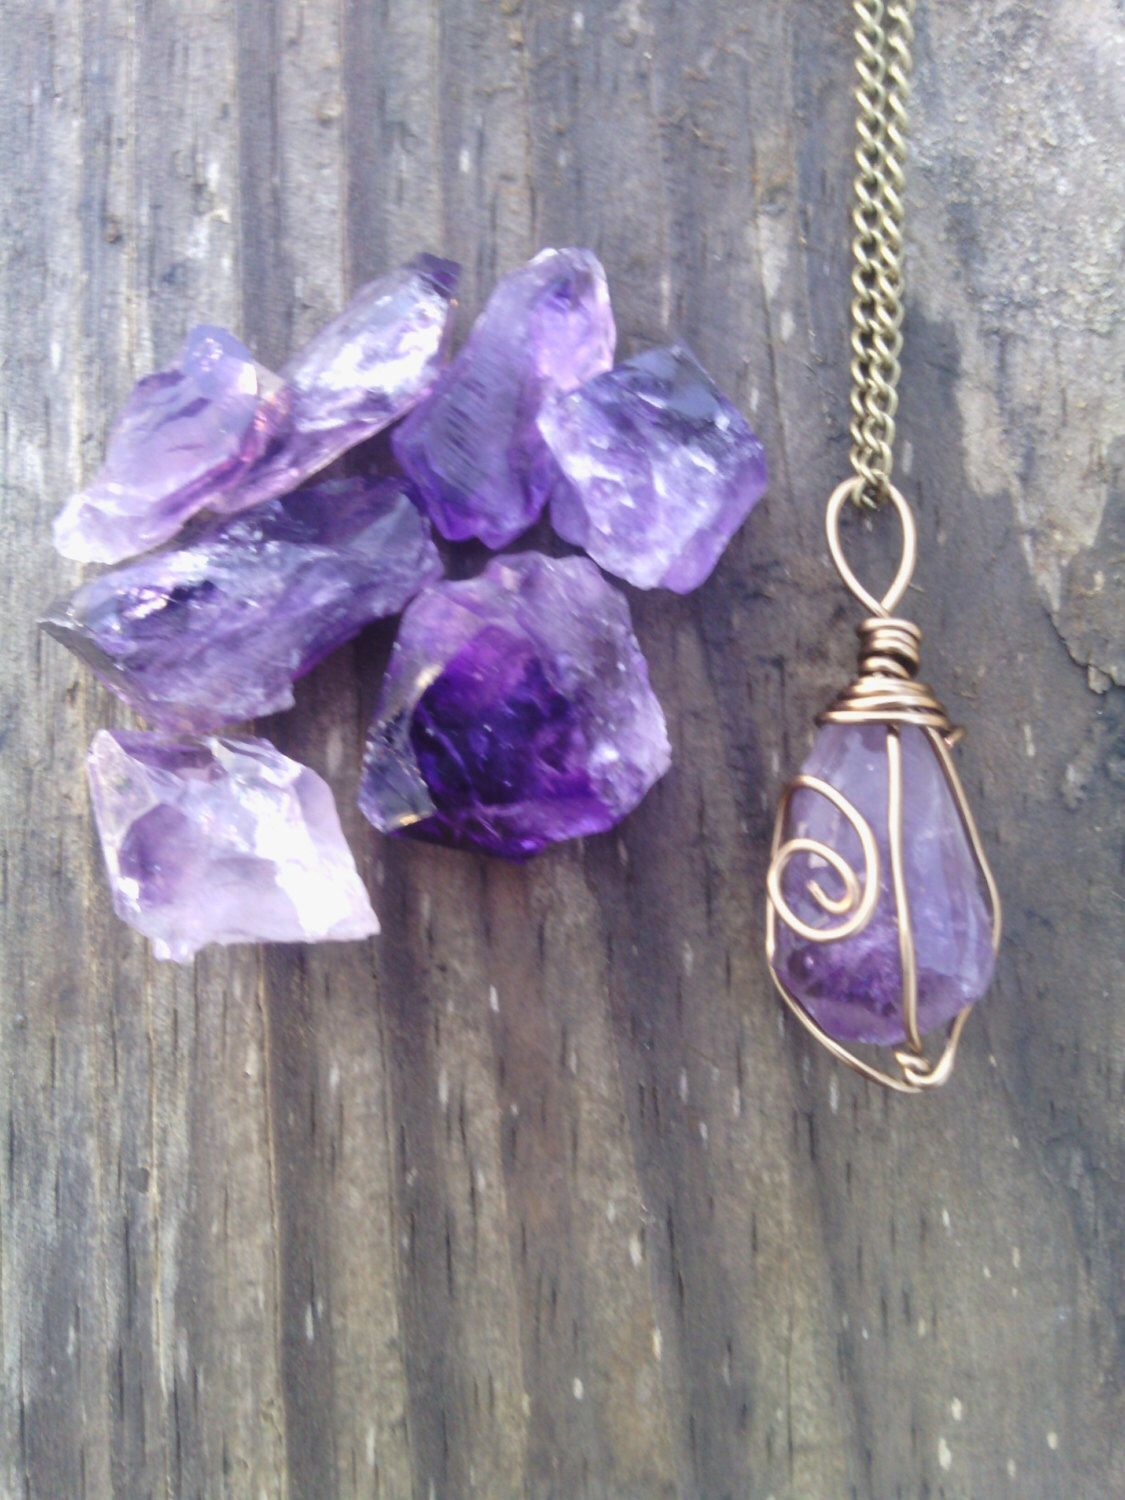 Amethyst necklace amethyst tower necklace healing stone amethyst raw amethyst necklace pendant boho necklace healing stone bronze amethyst pendulum point raw crystal stone birthstone purple by dieselboutique aloadofball Image collections